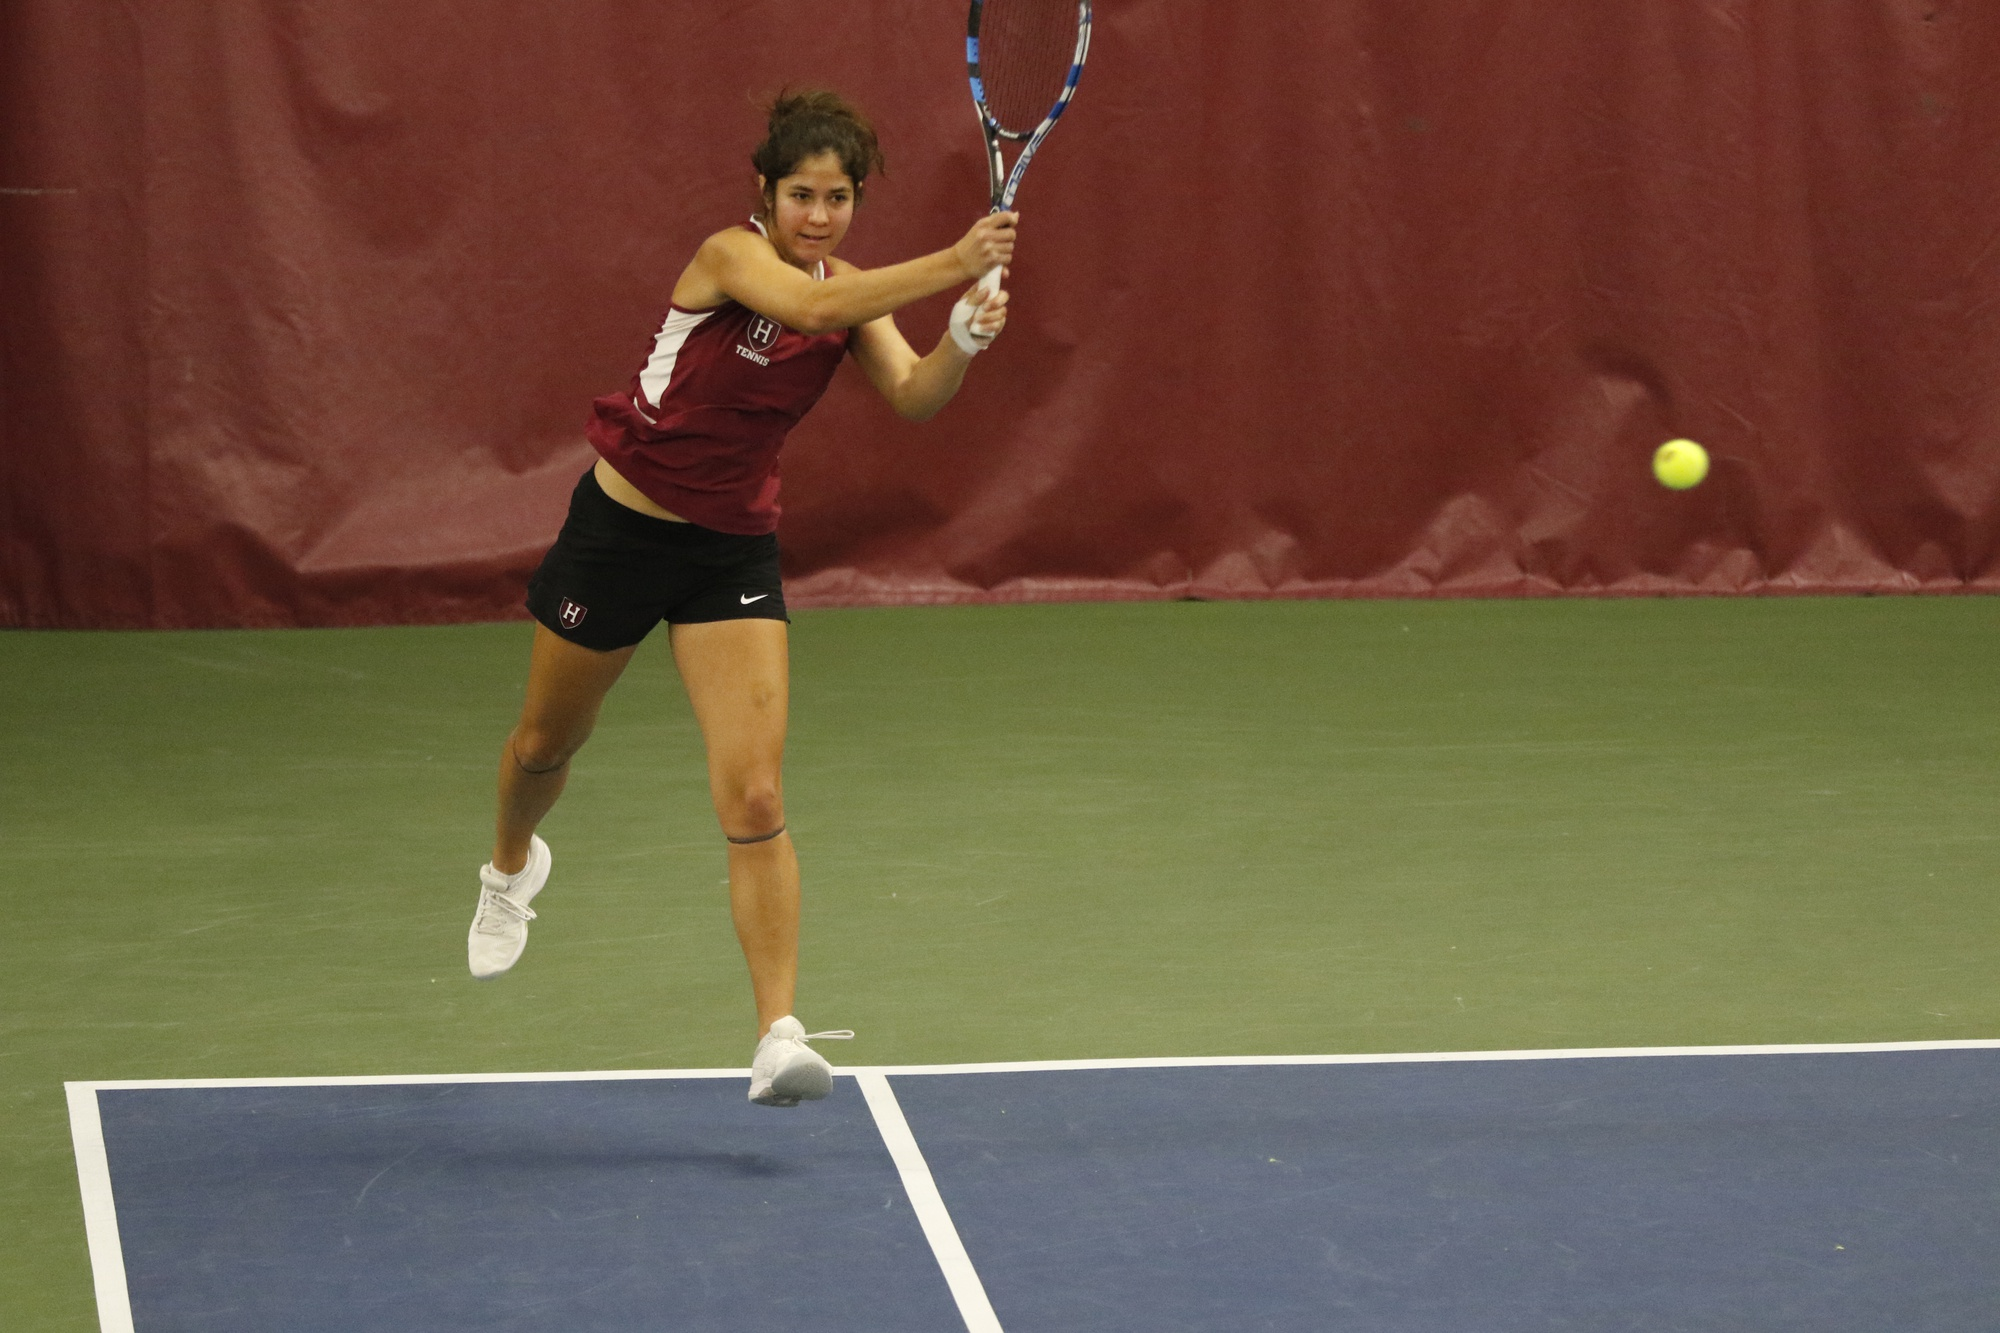 Senior captain Natasha Gonzalez competed in doubles over the weekend with sophomore Rachel Lim in an impressive showing.